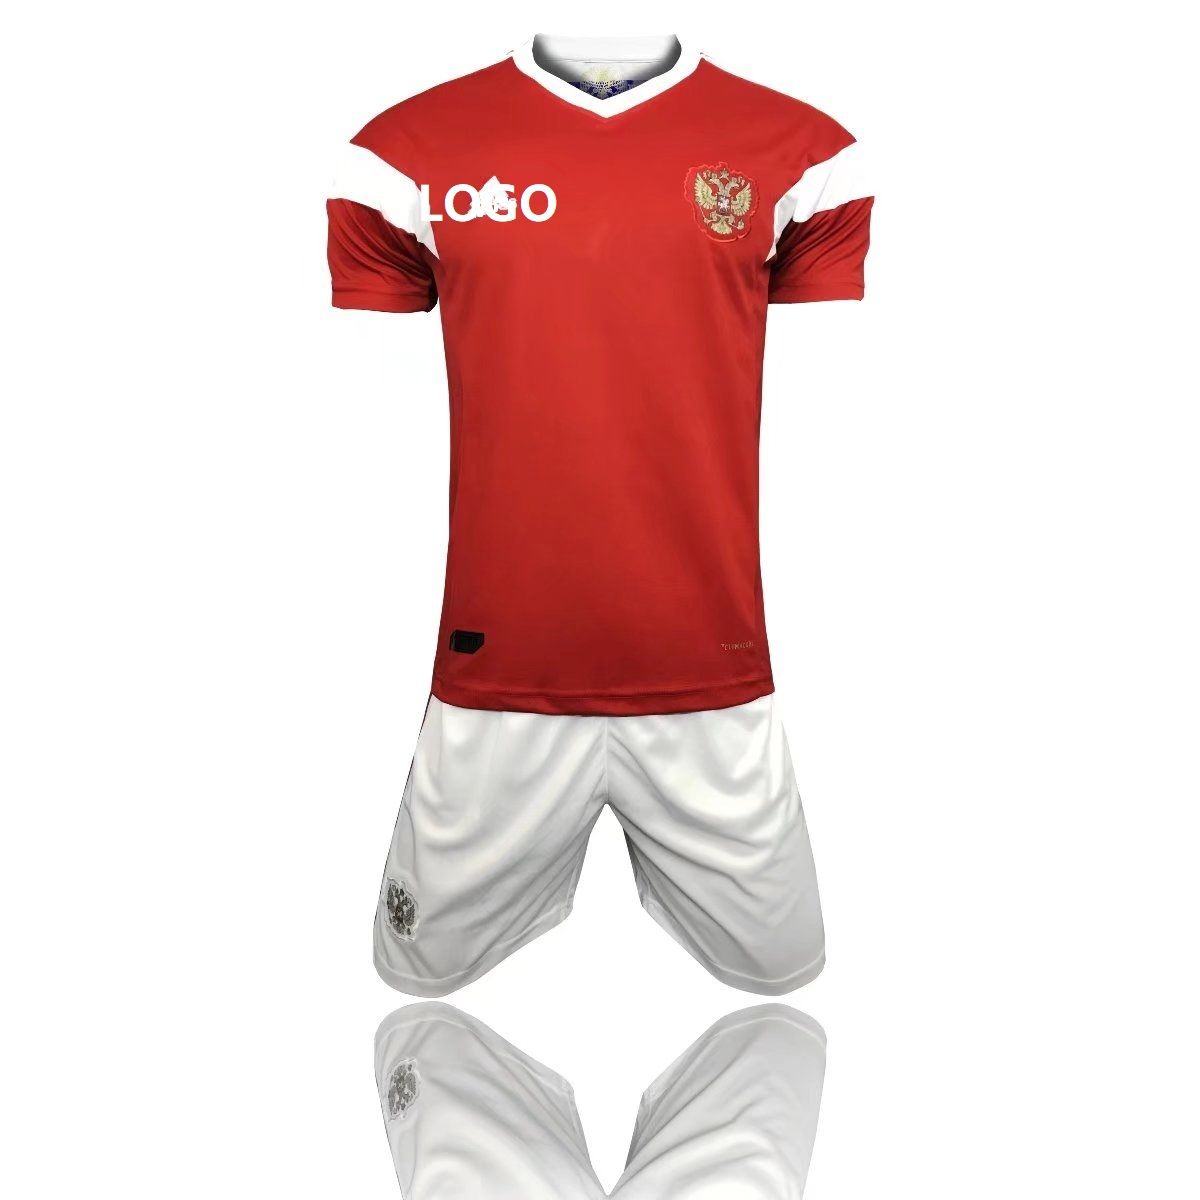 b87bb8f1f 2018 Russia World Cup Adult Russia Home Red white Soccer Uniform Men  Football Kits Custom Name Number